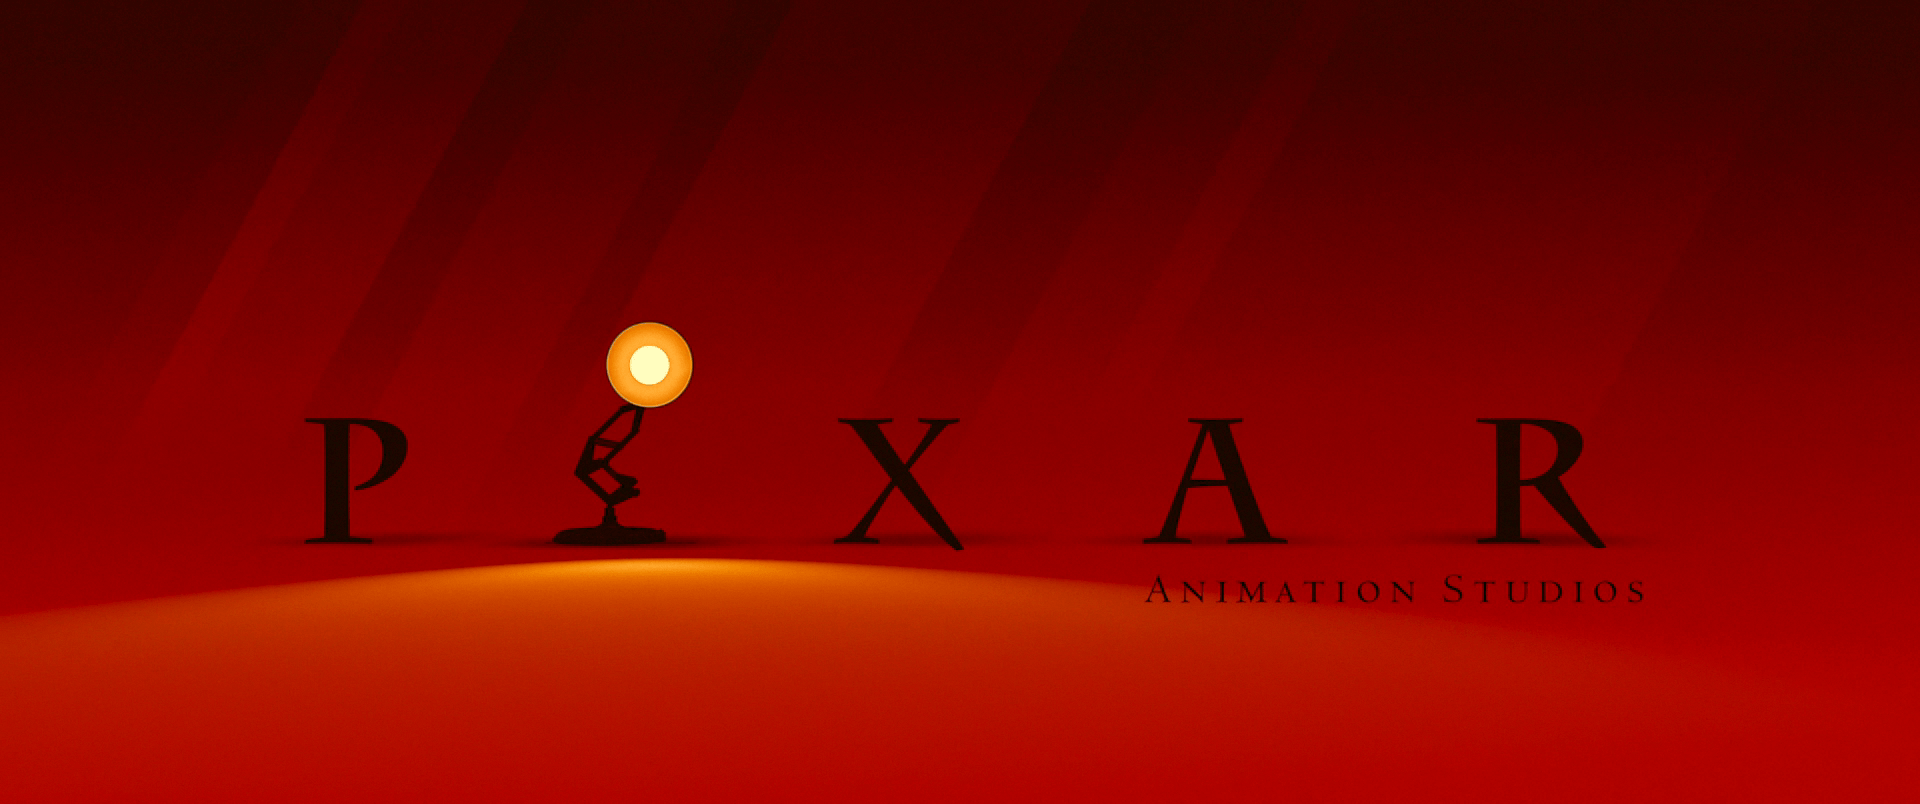 Pixar Logo - Pixar Production Logo | Pixar Wiki | FANDOM powered by Wikia